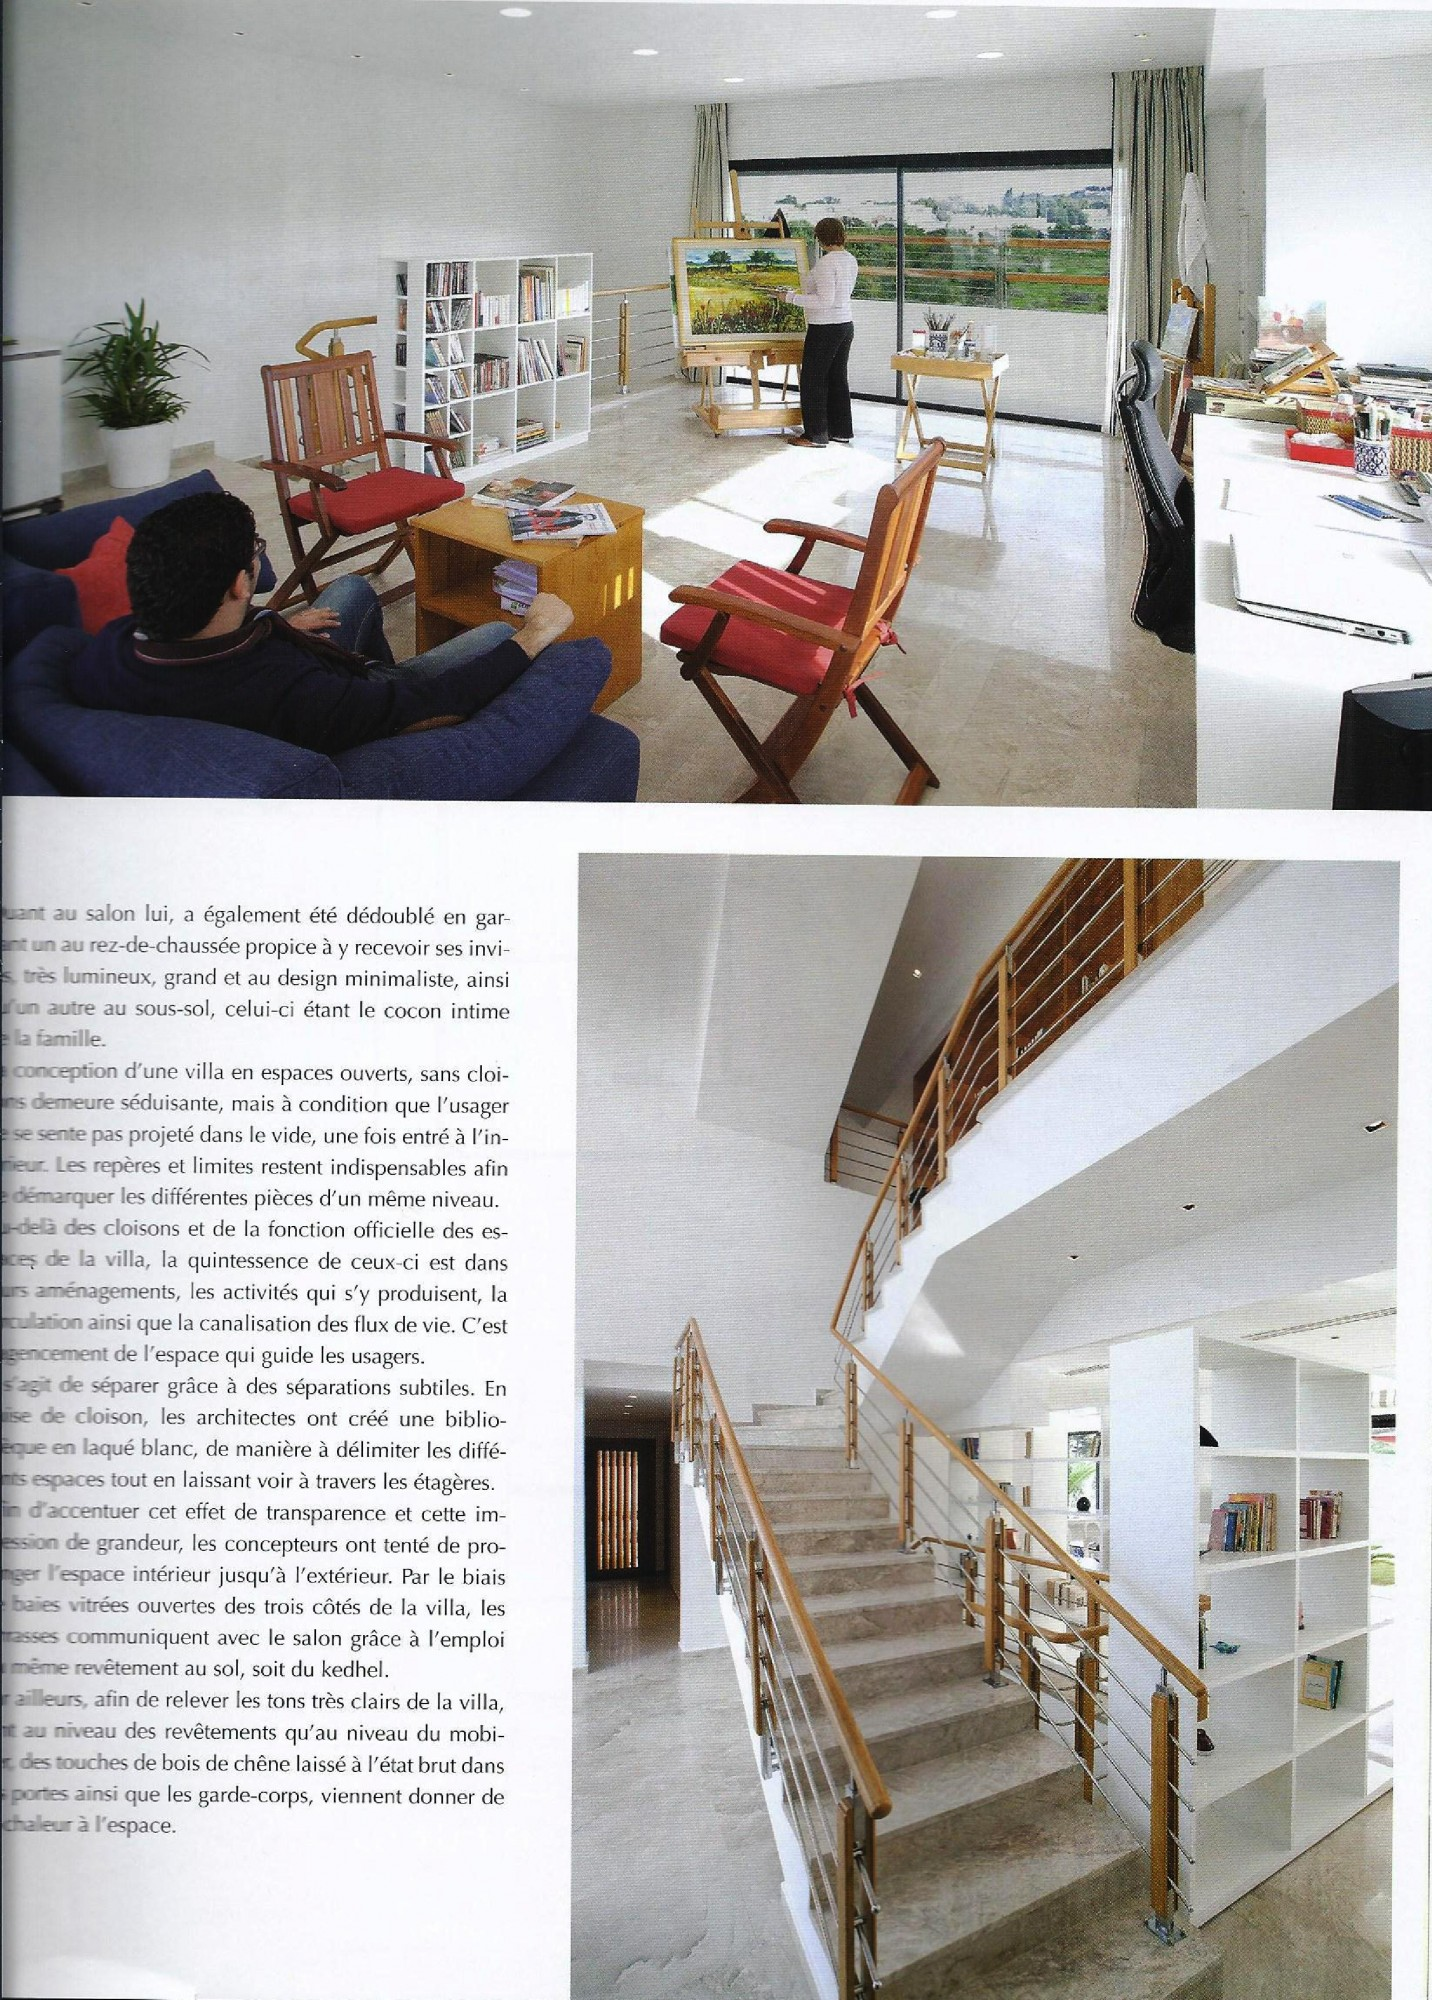 http://www.baakarchitects.com/wp-content/uploads/2015/11/publication-28-page-005-1432x2000.jpg